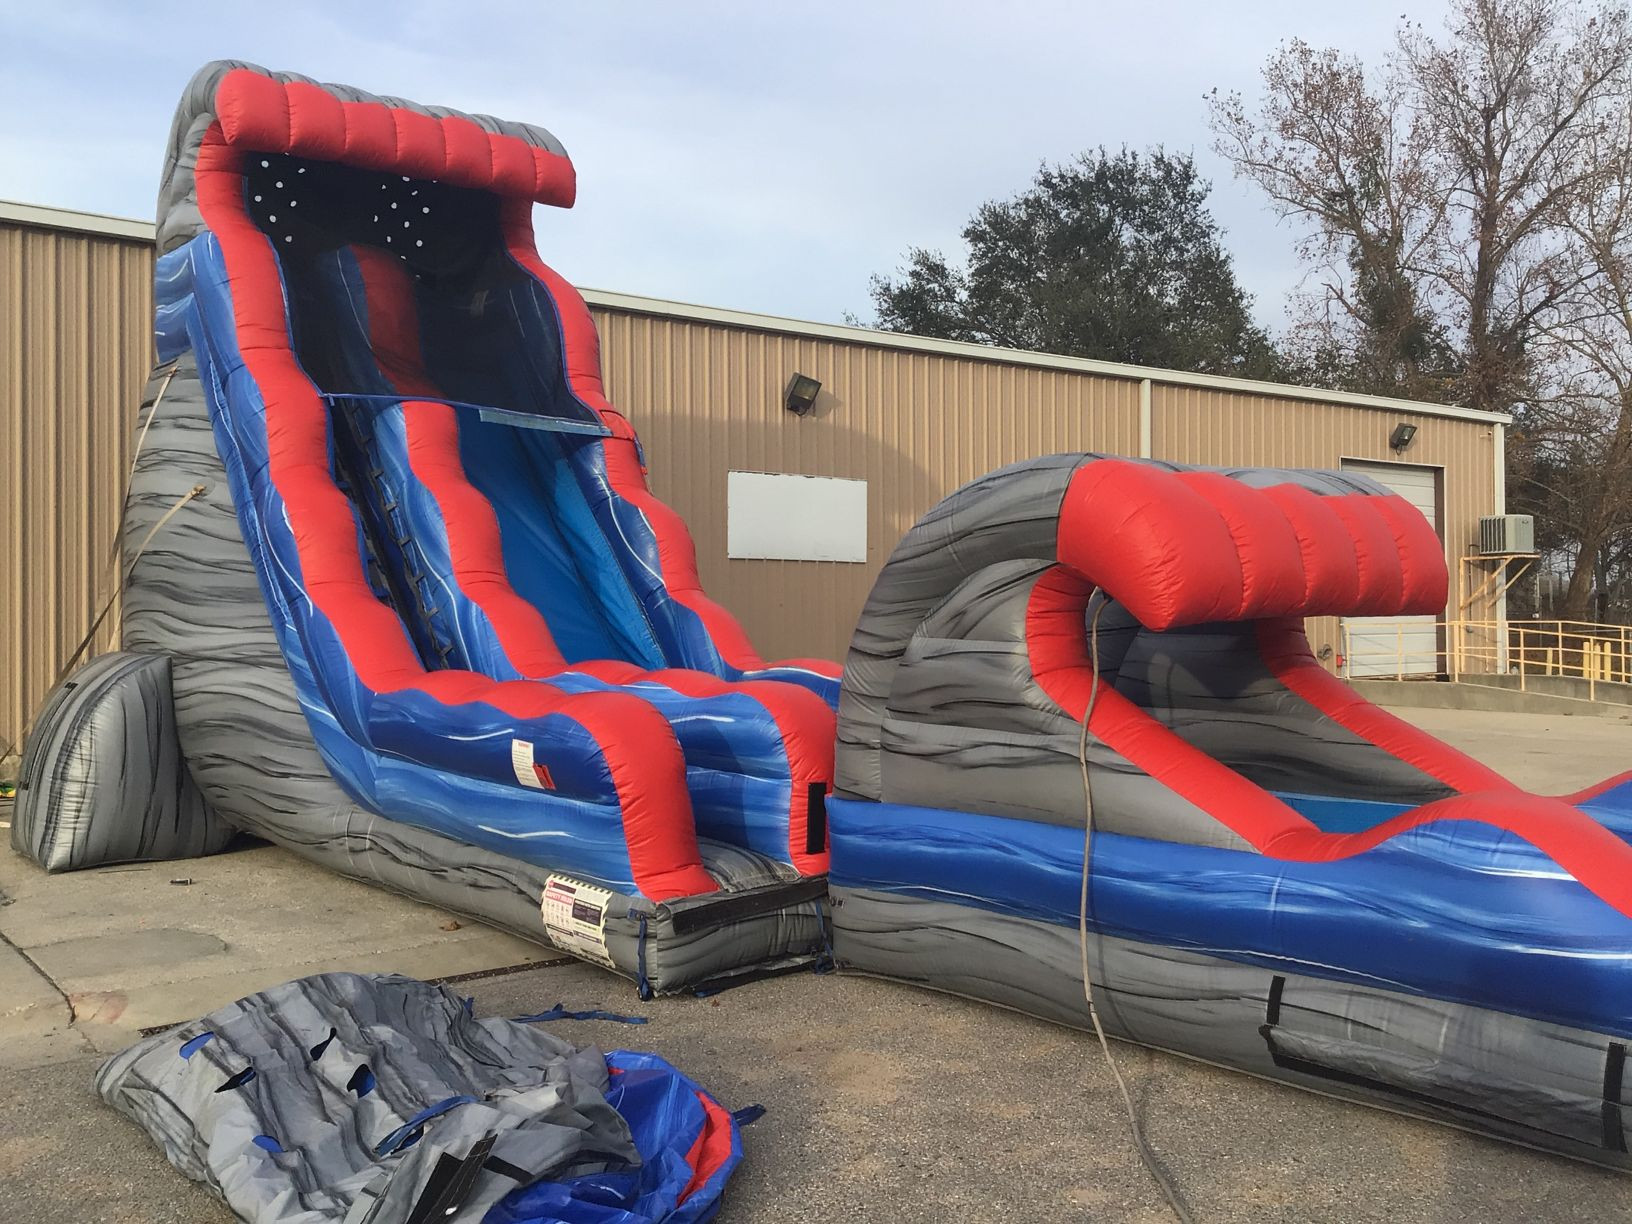 22' Rocky Tsunami Slide with Pool and Slip N Slide Attachments